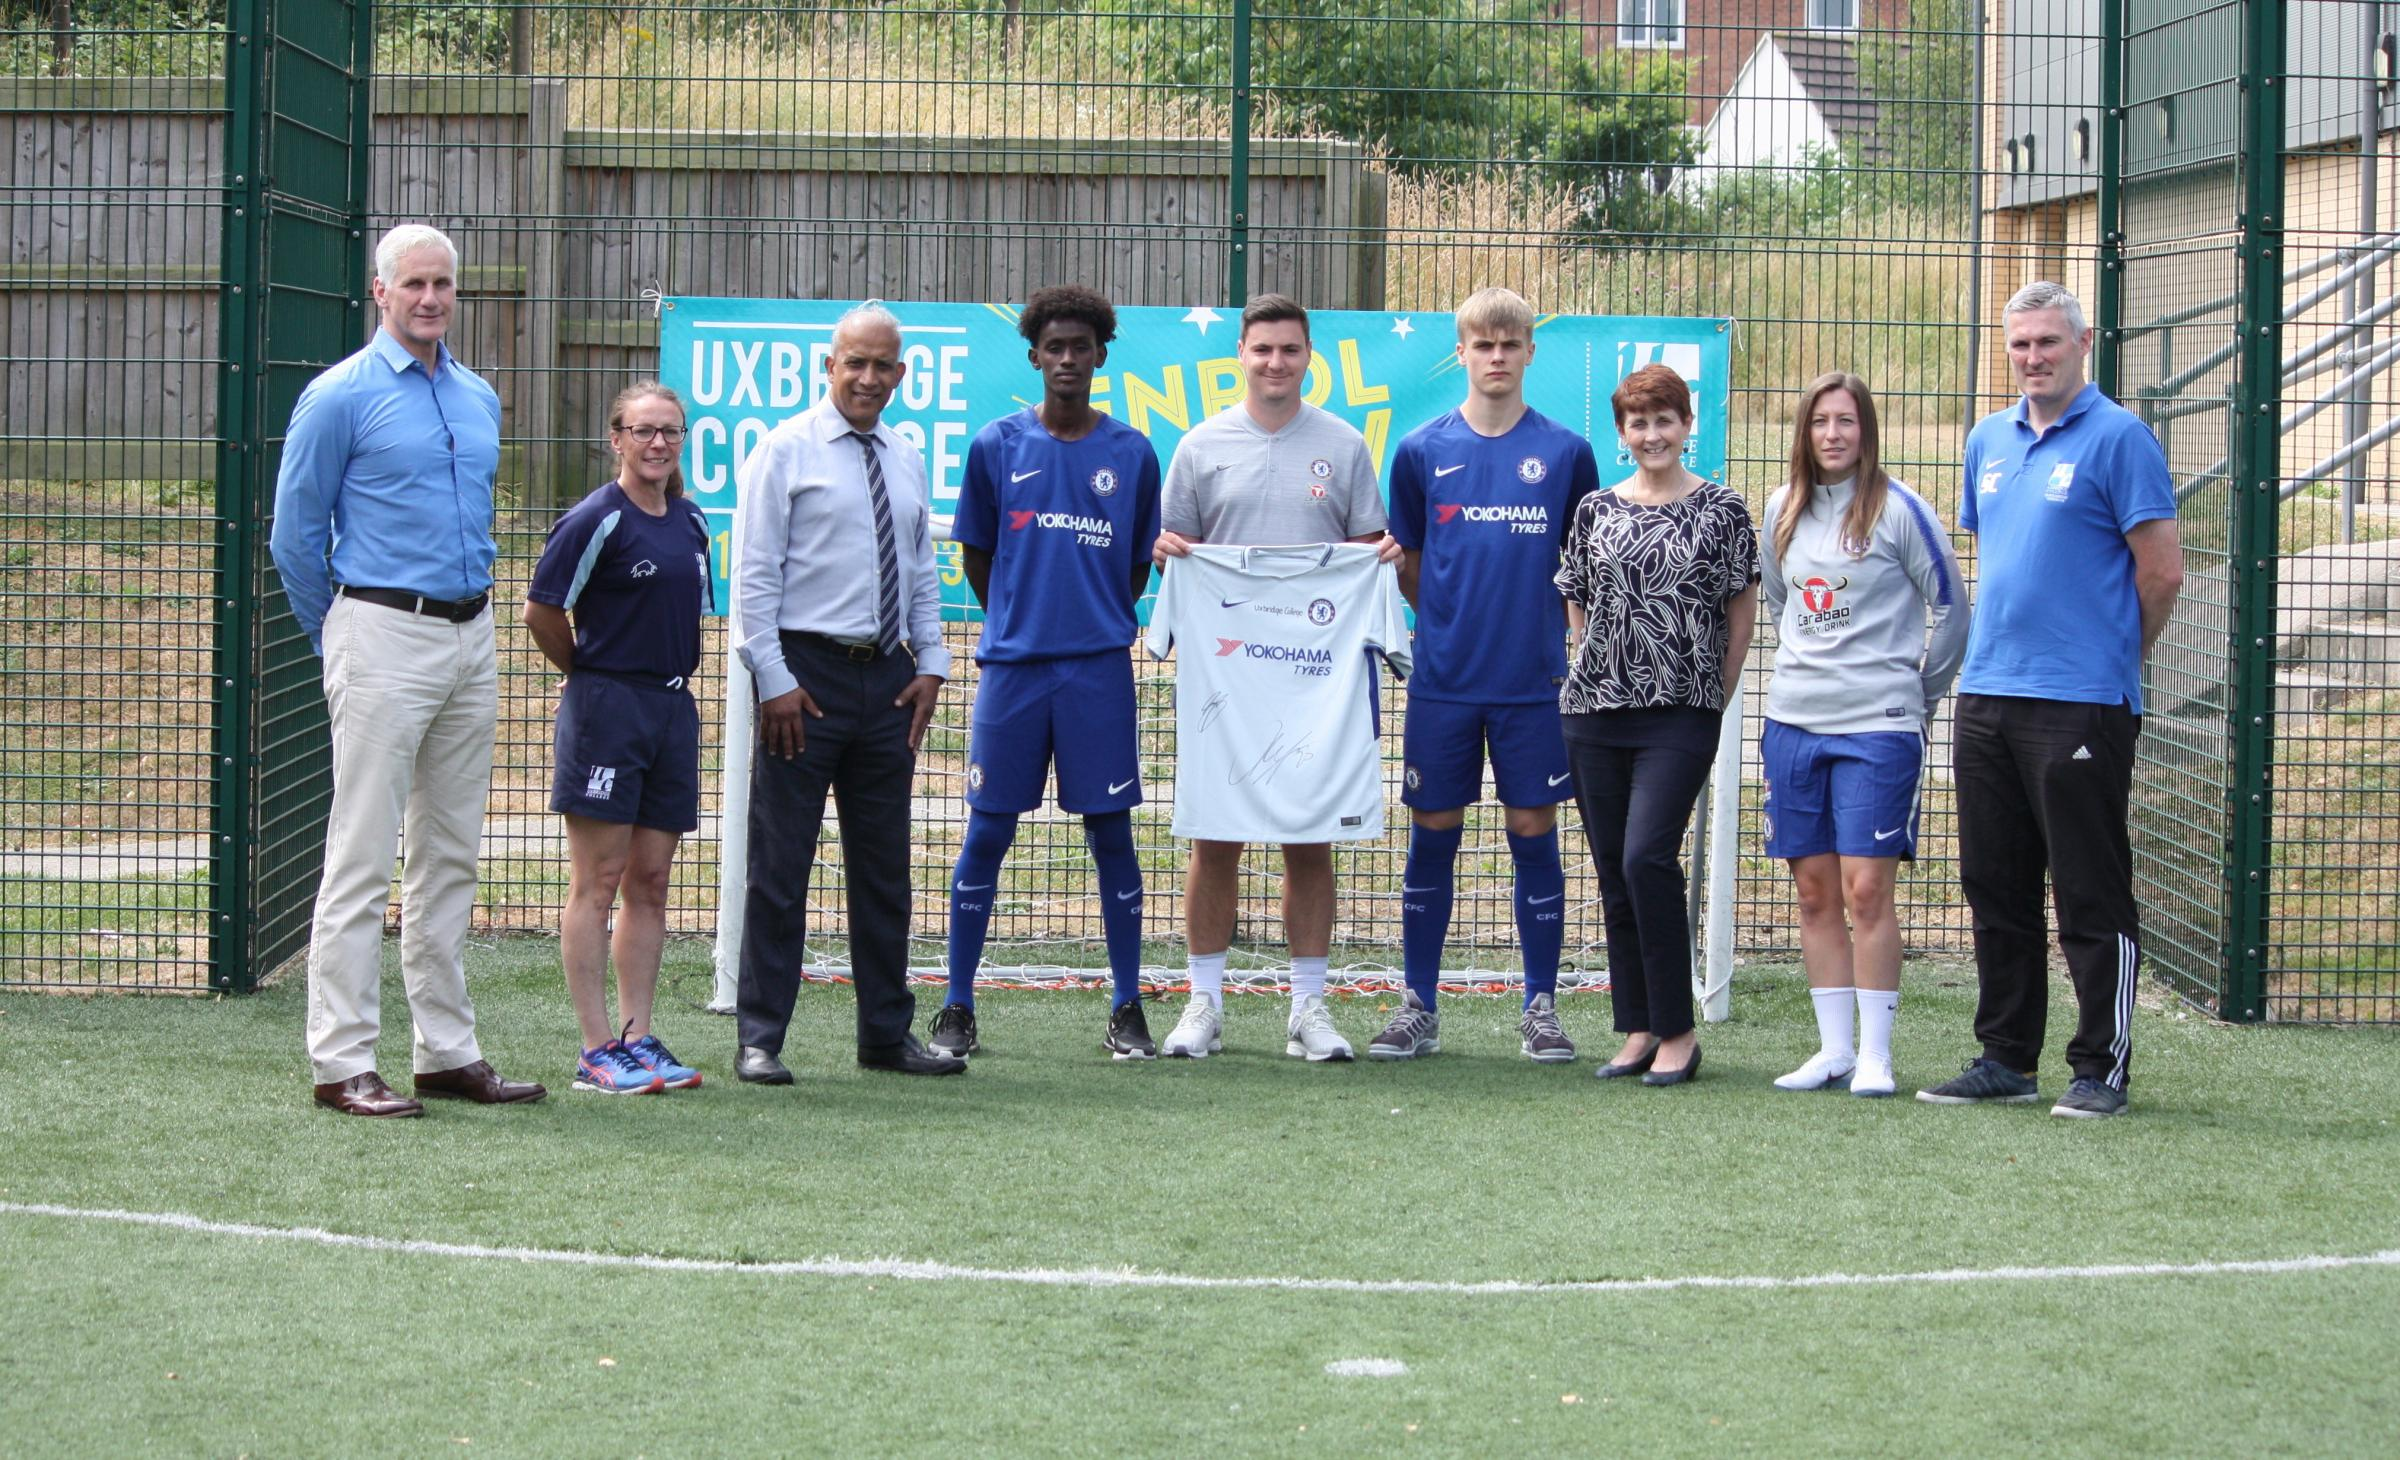 Chelsea Football Club announce partnership with Uxbridge College